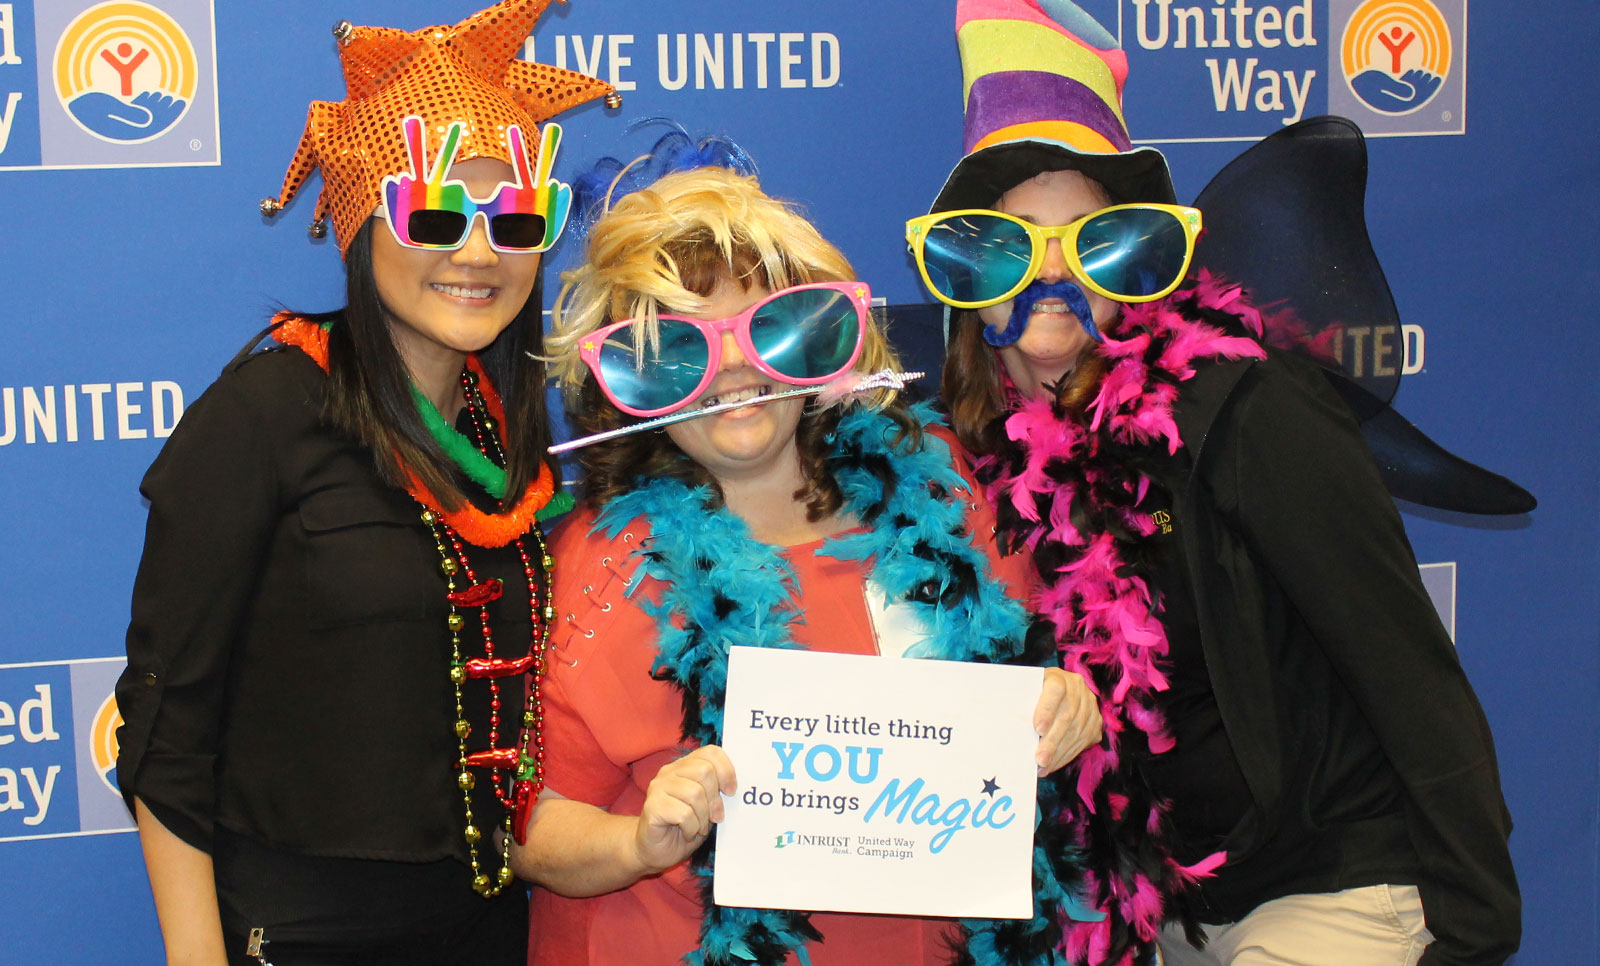 Employees taking part in the photo booth at our Agency Fair